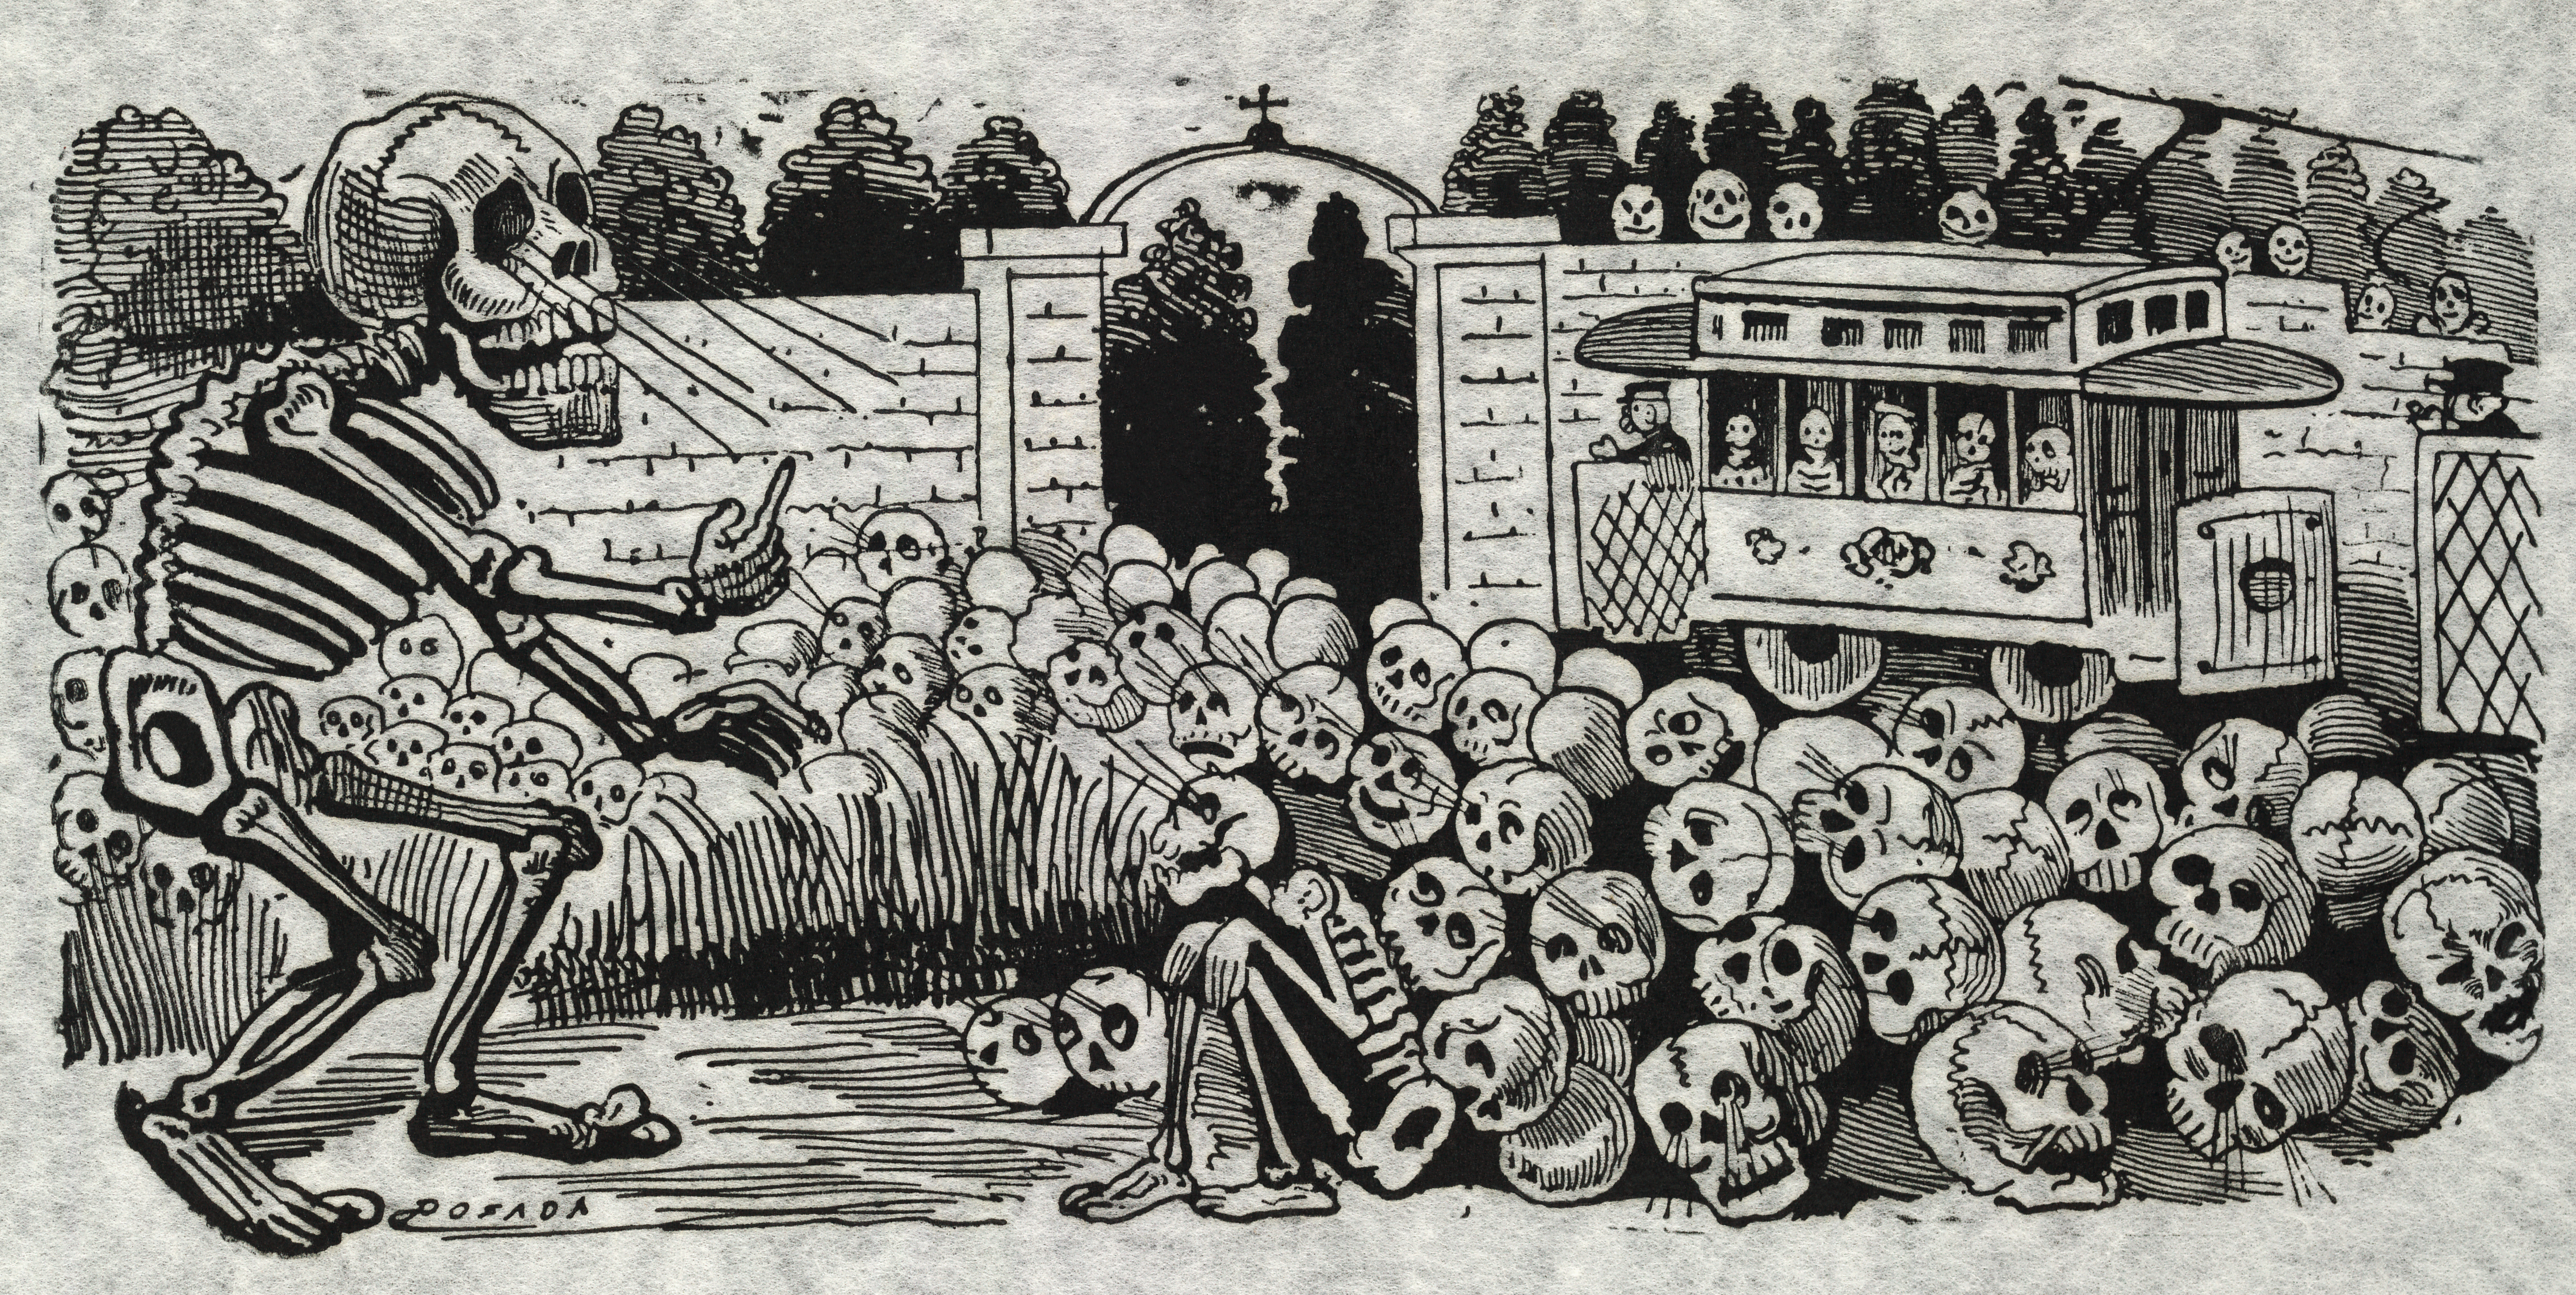 Reproduction of a black and white Jose Guadalupe Posada print. Large skeleton commanding the attention of skulls.